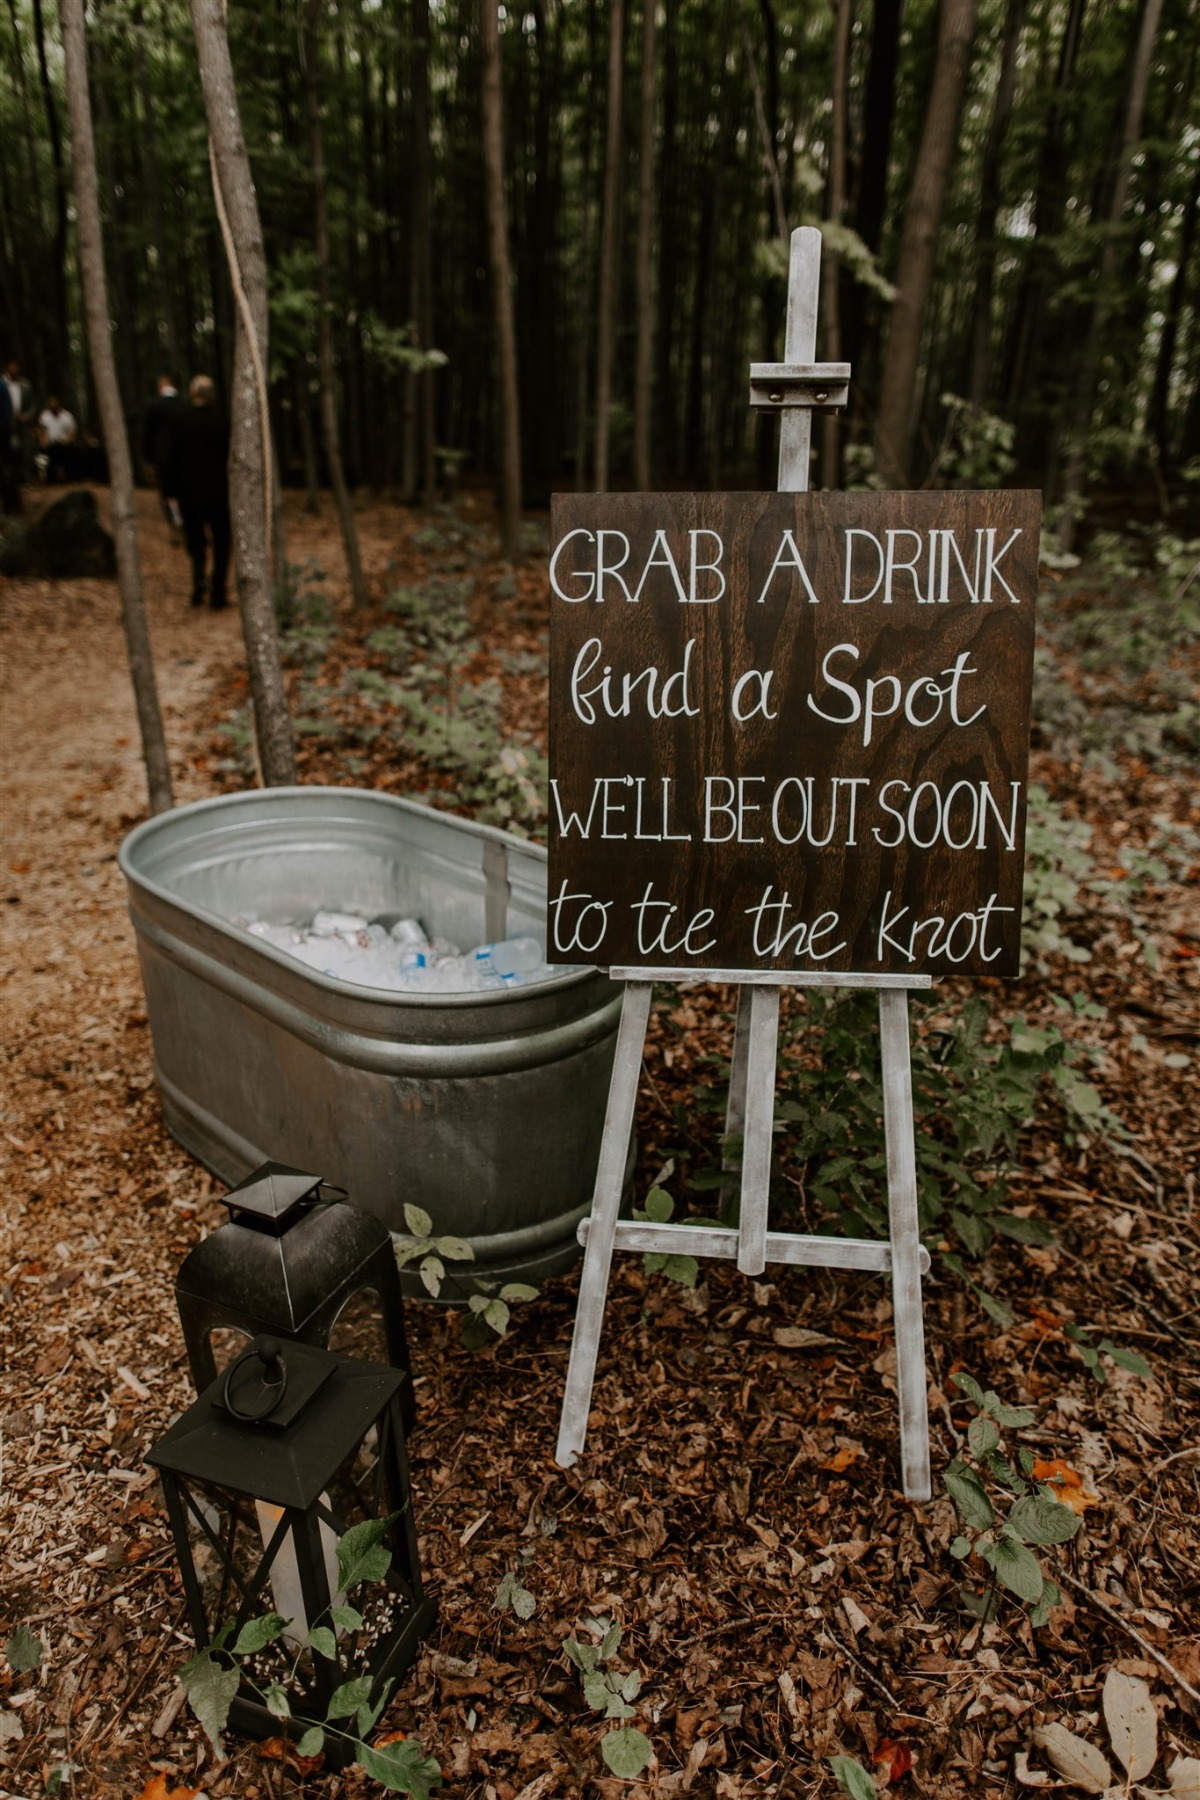 Grab a drink, find a spot we'll be out soon to tie the knot sign